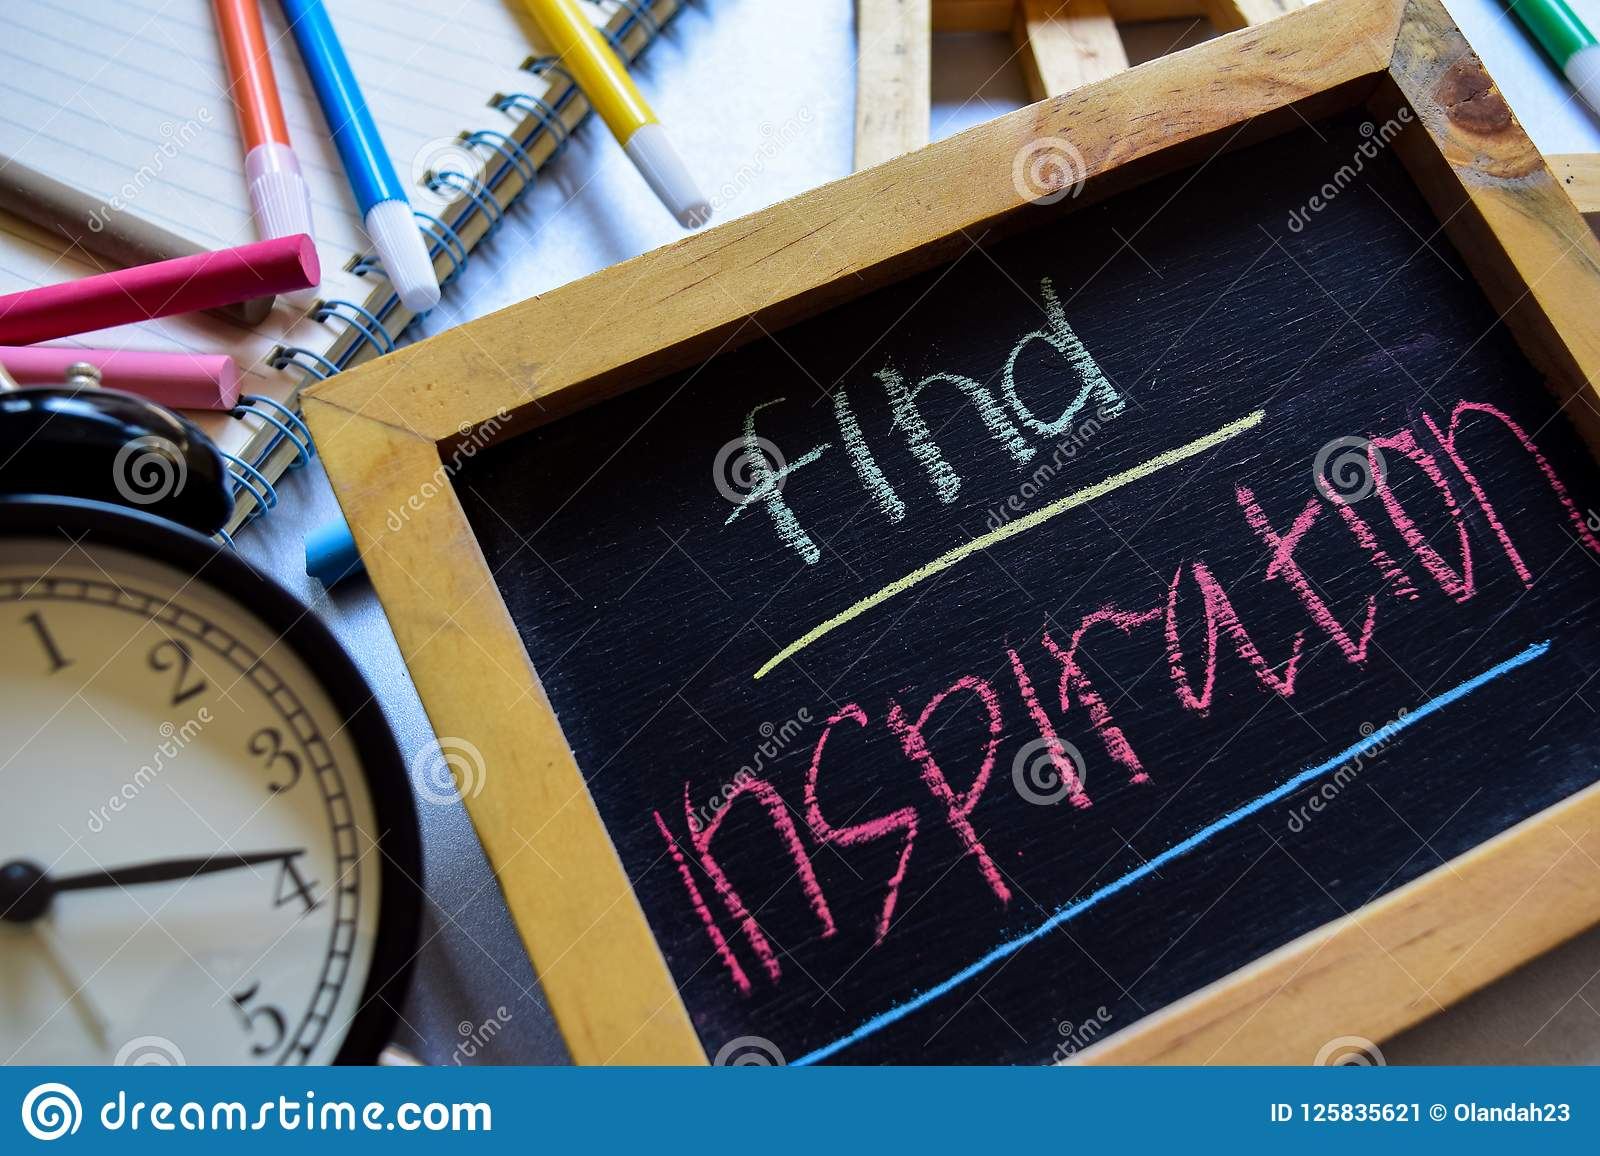 Find inspiration on phrase colorful handwritten on chalkboard, alarm clock with motivation and education concepts.